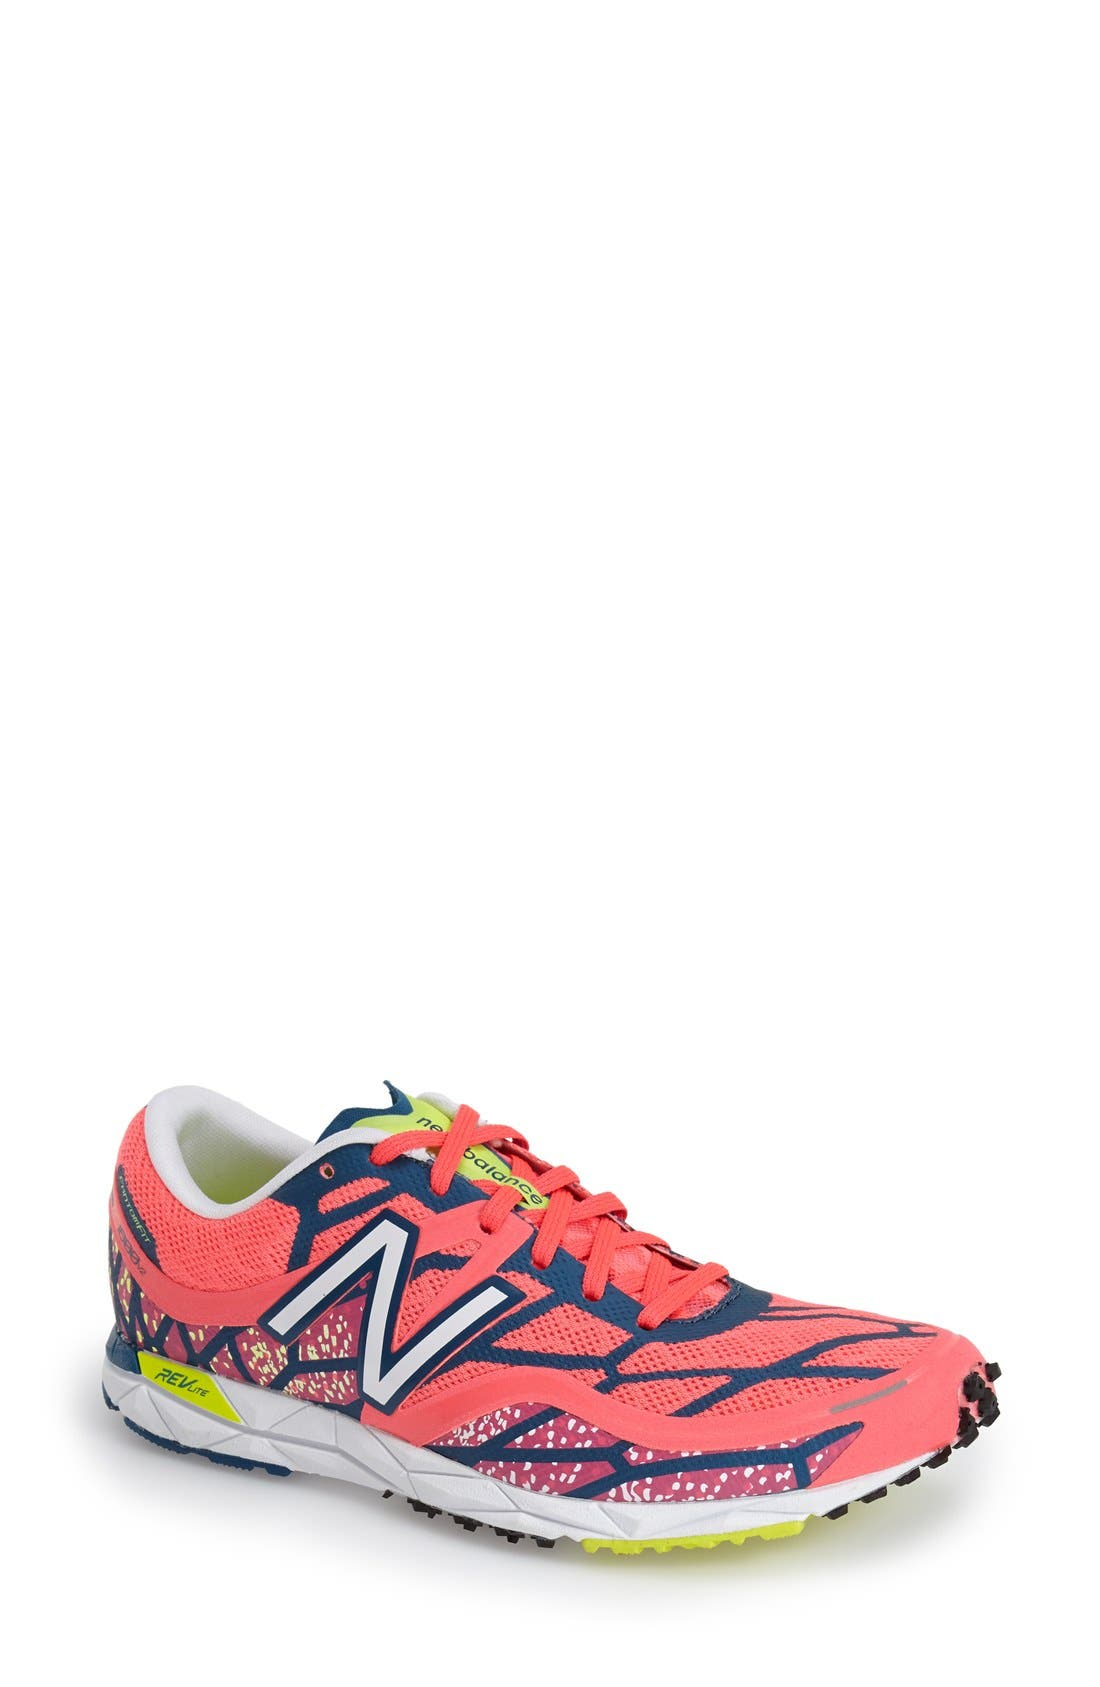 Alternate Image 1 Selected - New Balance '1600' Running Shoe (Women)